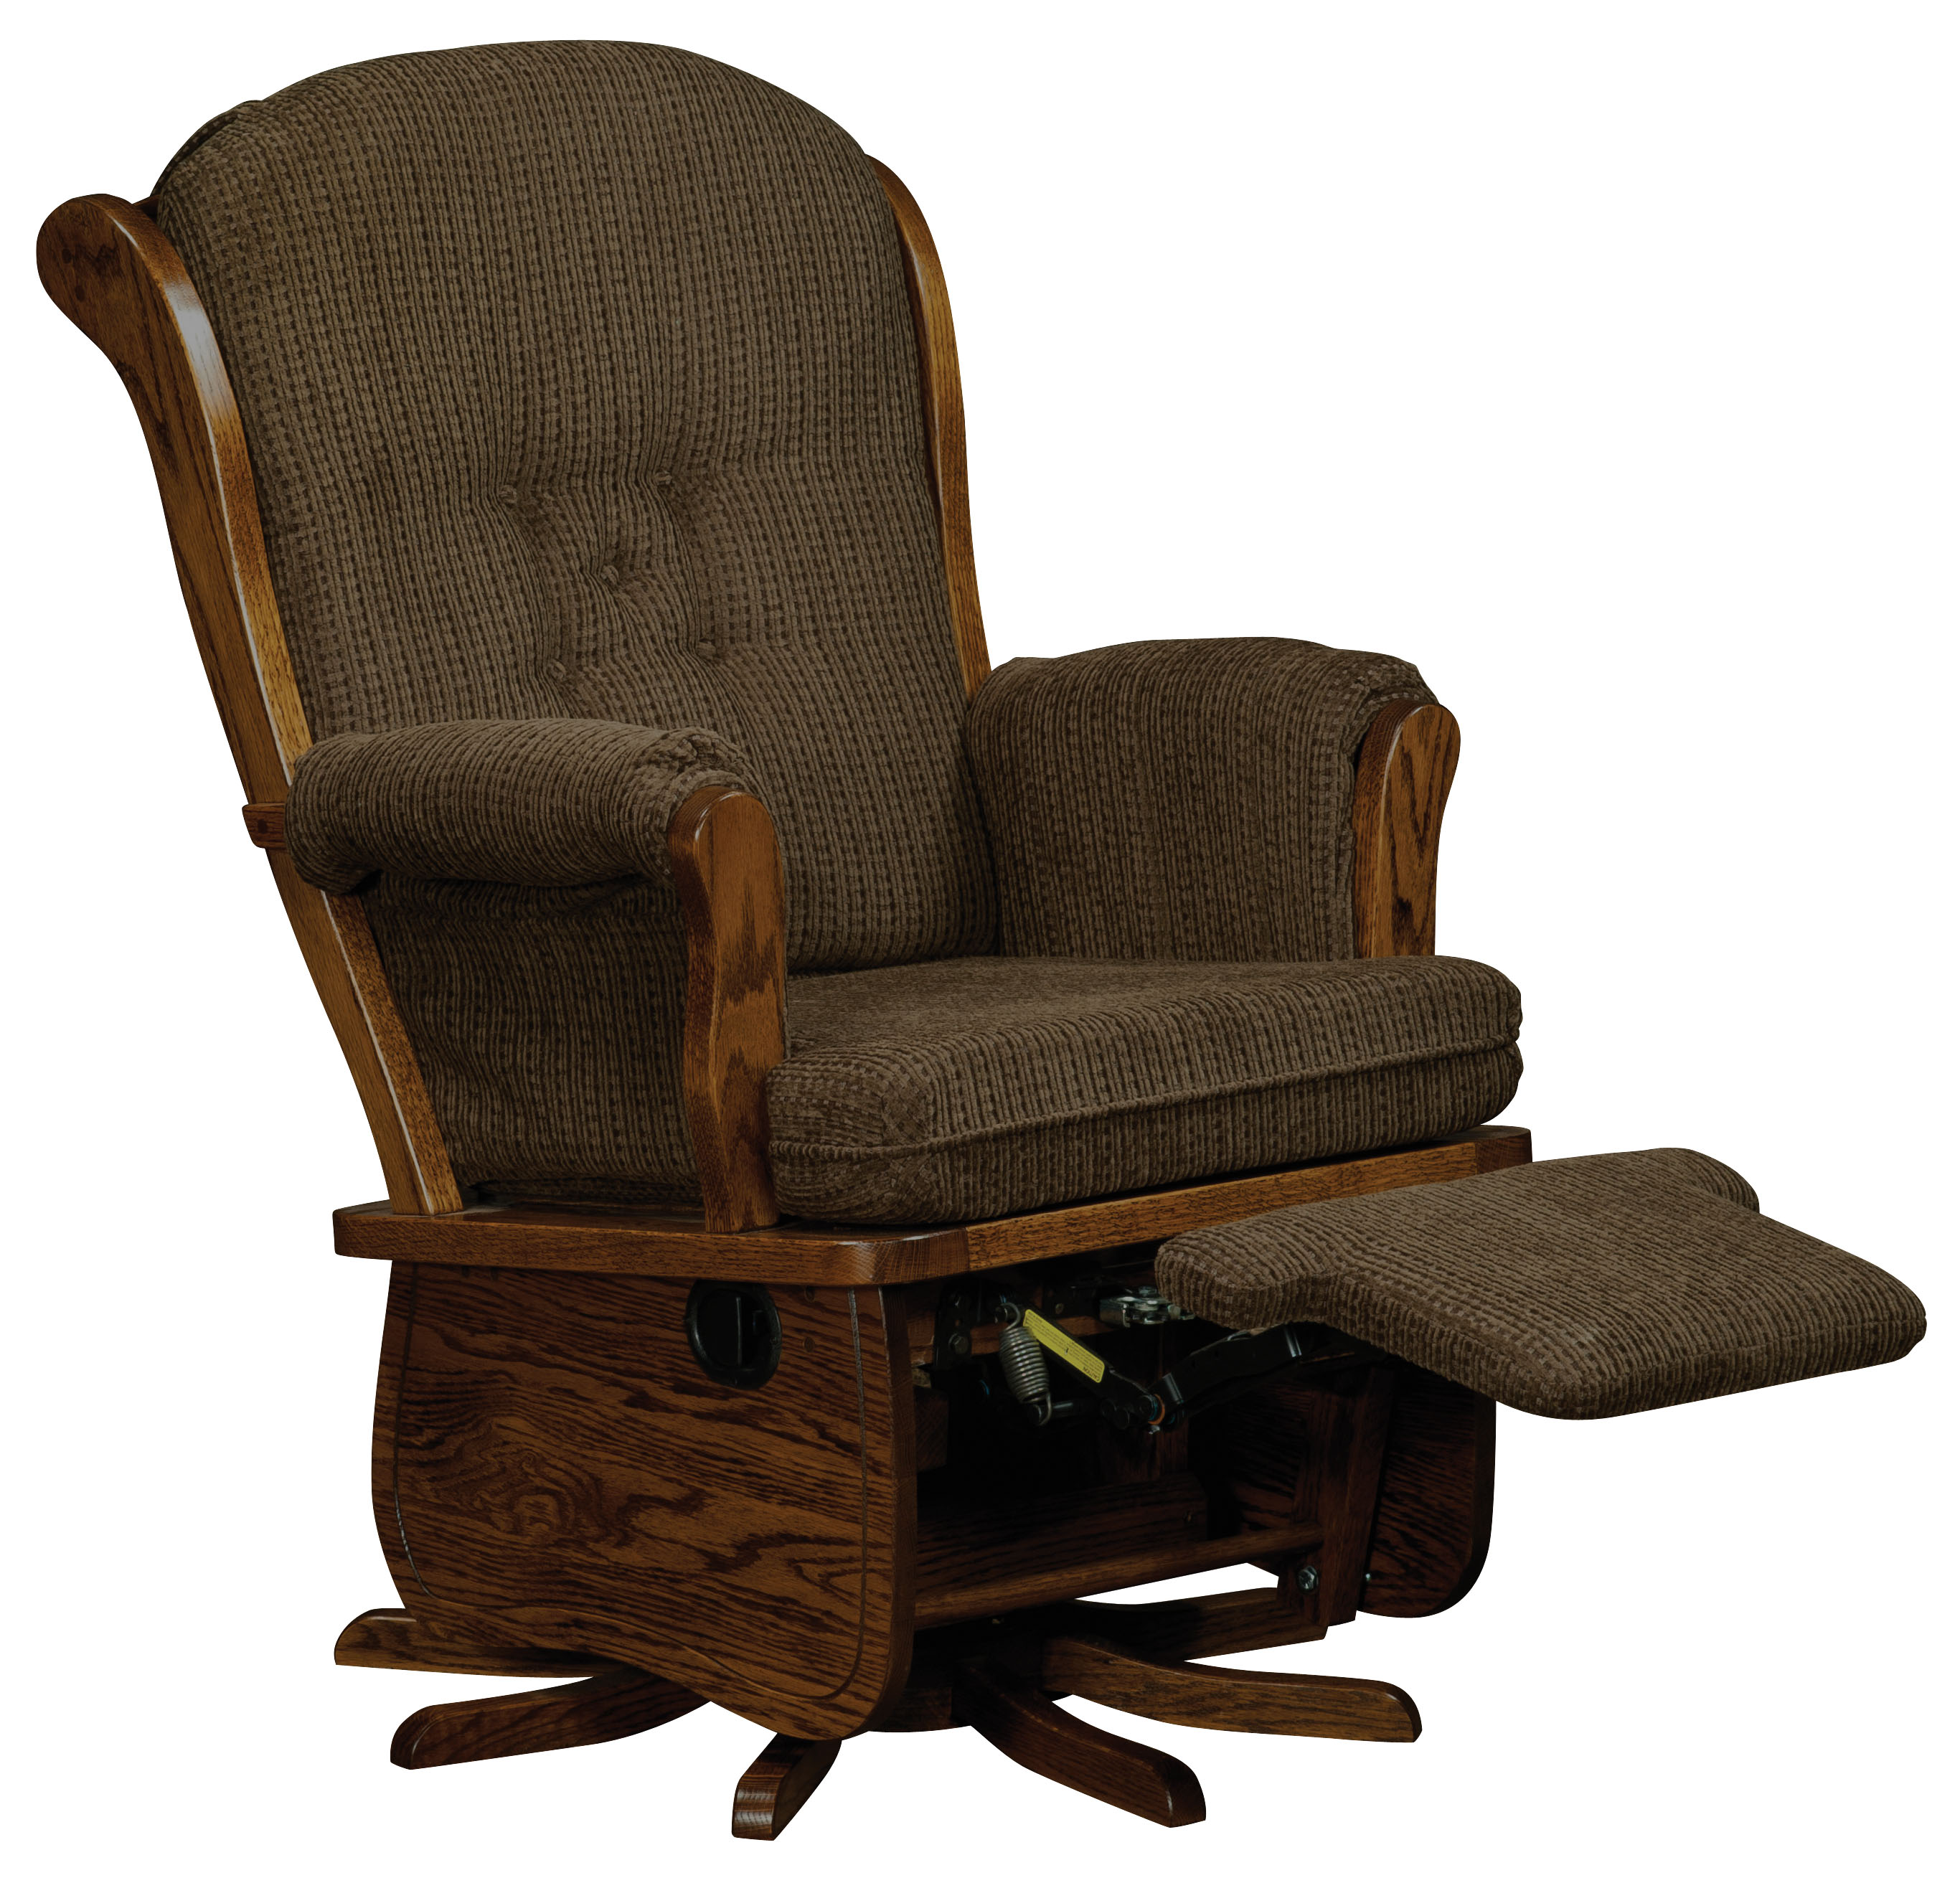 Swanback Swivel Glider  Amish Direct Furniture. Kitchen Paint Colors With Wood Cabinets. Kitchen Cabinet Door Sizes Standard. Retro Kitchen Cabinet. Black Handles For Kitchen Cabinets. Reface Your Kitchen Cabinets. Kitchen Wall Corner Cabinet. Diy Outdoor Kitchen Cabinets. Ikea Kitchen Cabinet Construction